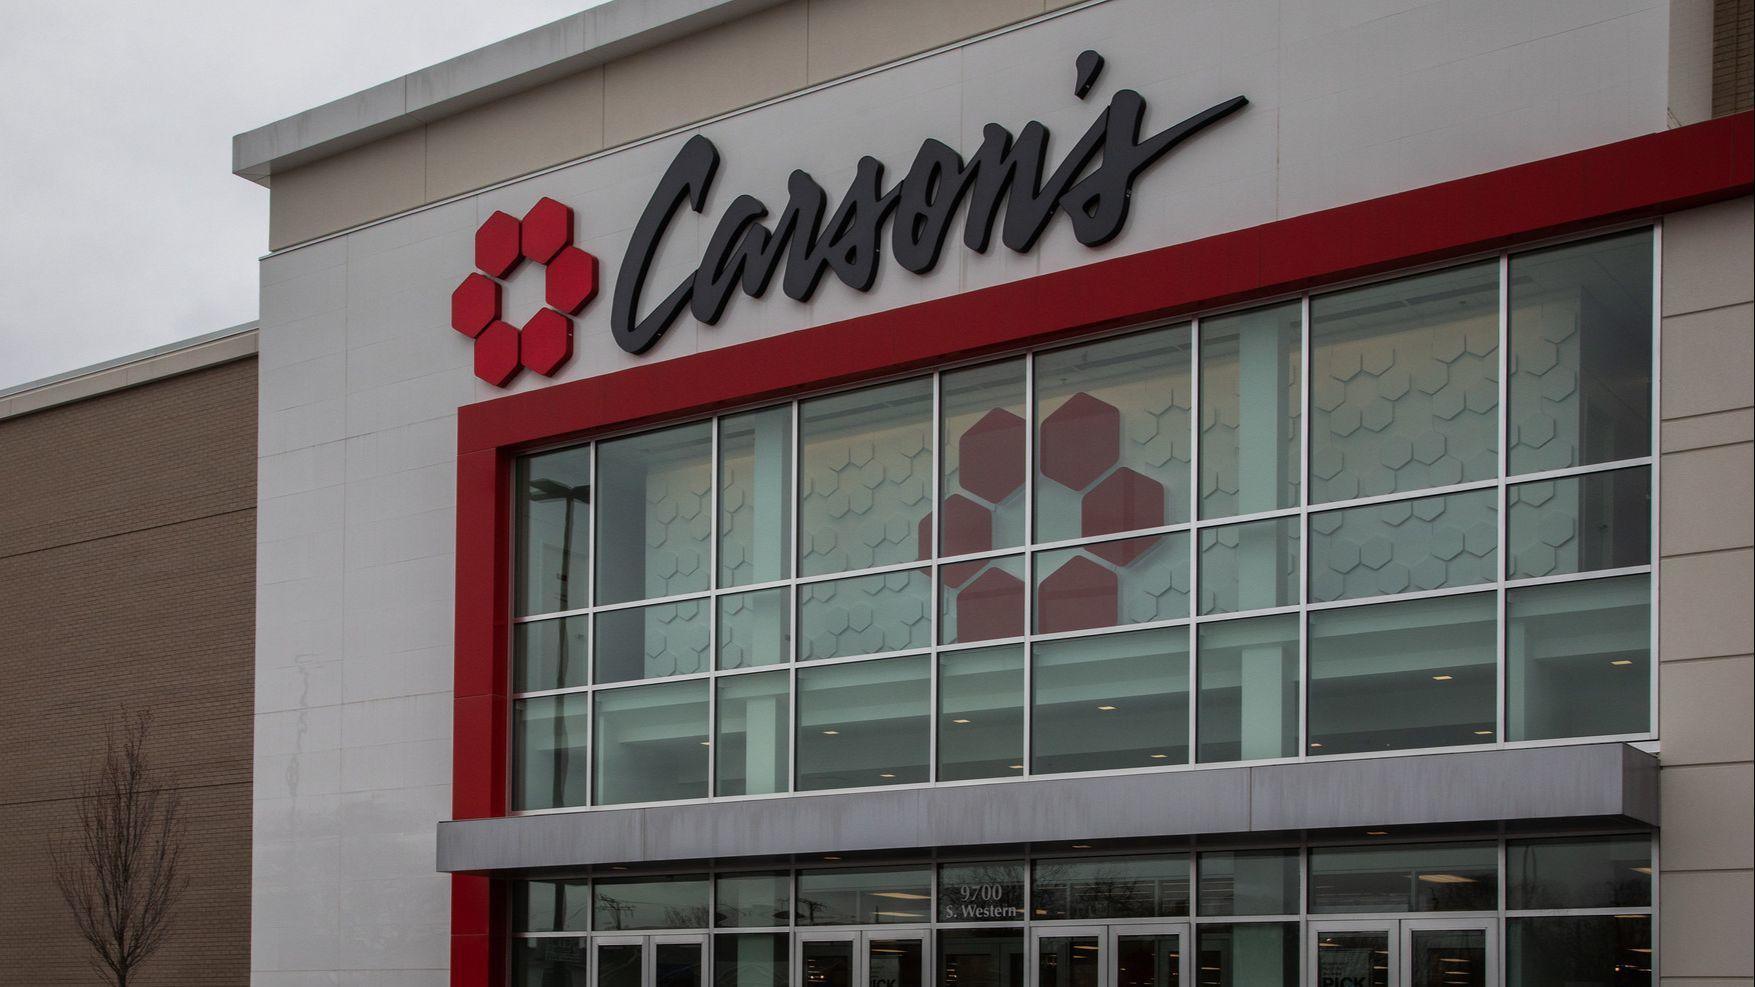 Carsonu0027s To Close After Parent Company Fails To Find Buyer   Chicago Tribune